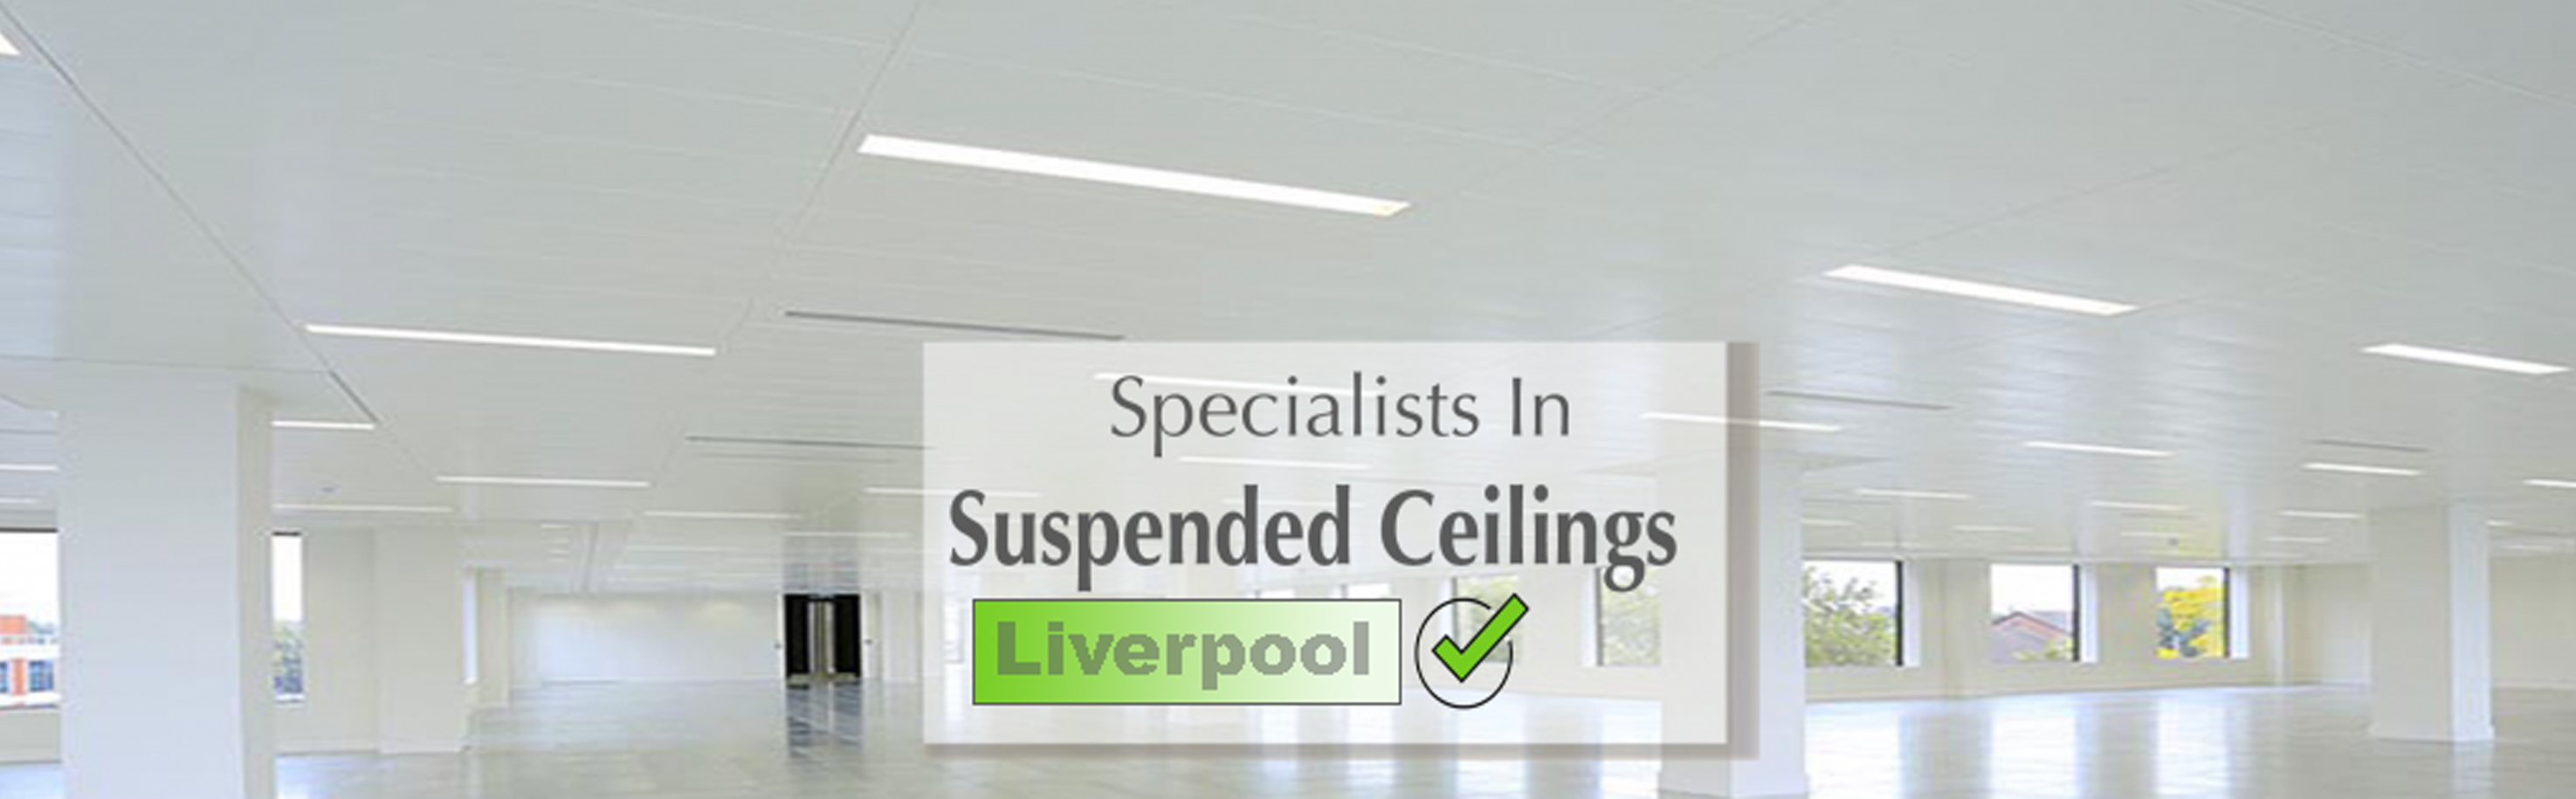 Suspended Ceilings Liverpool